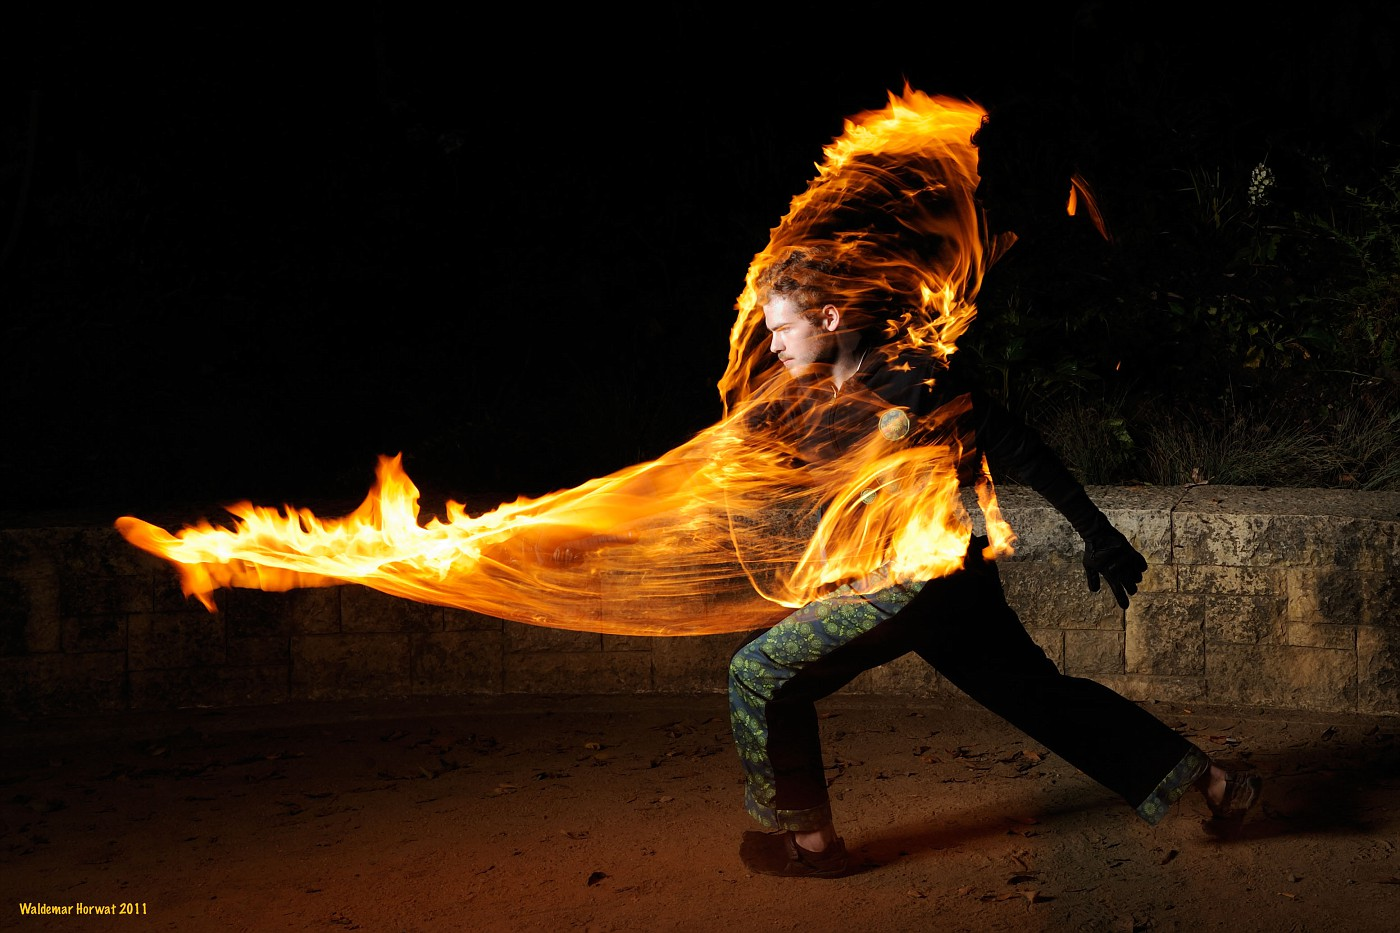 Nova, the Fire Bender